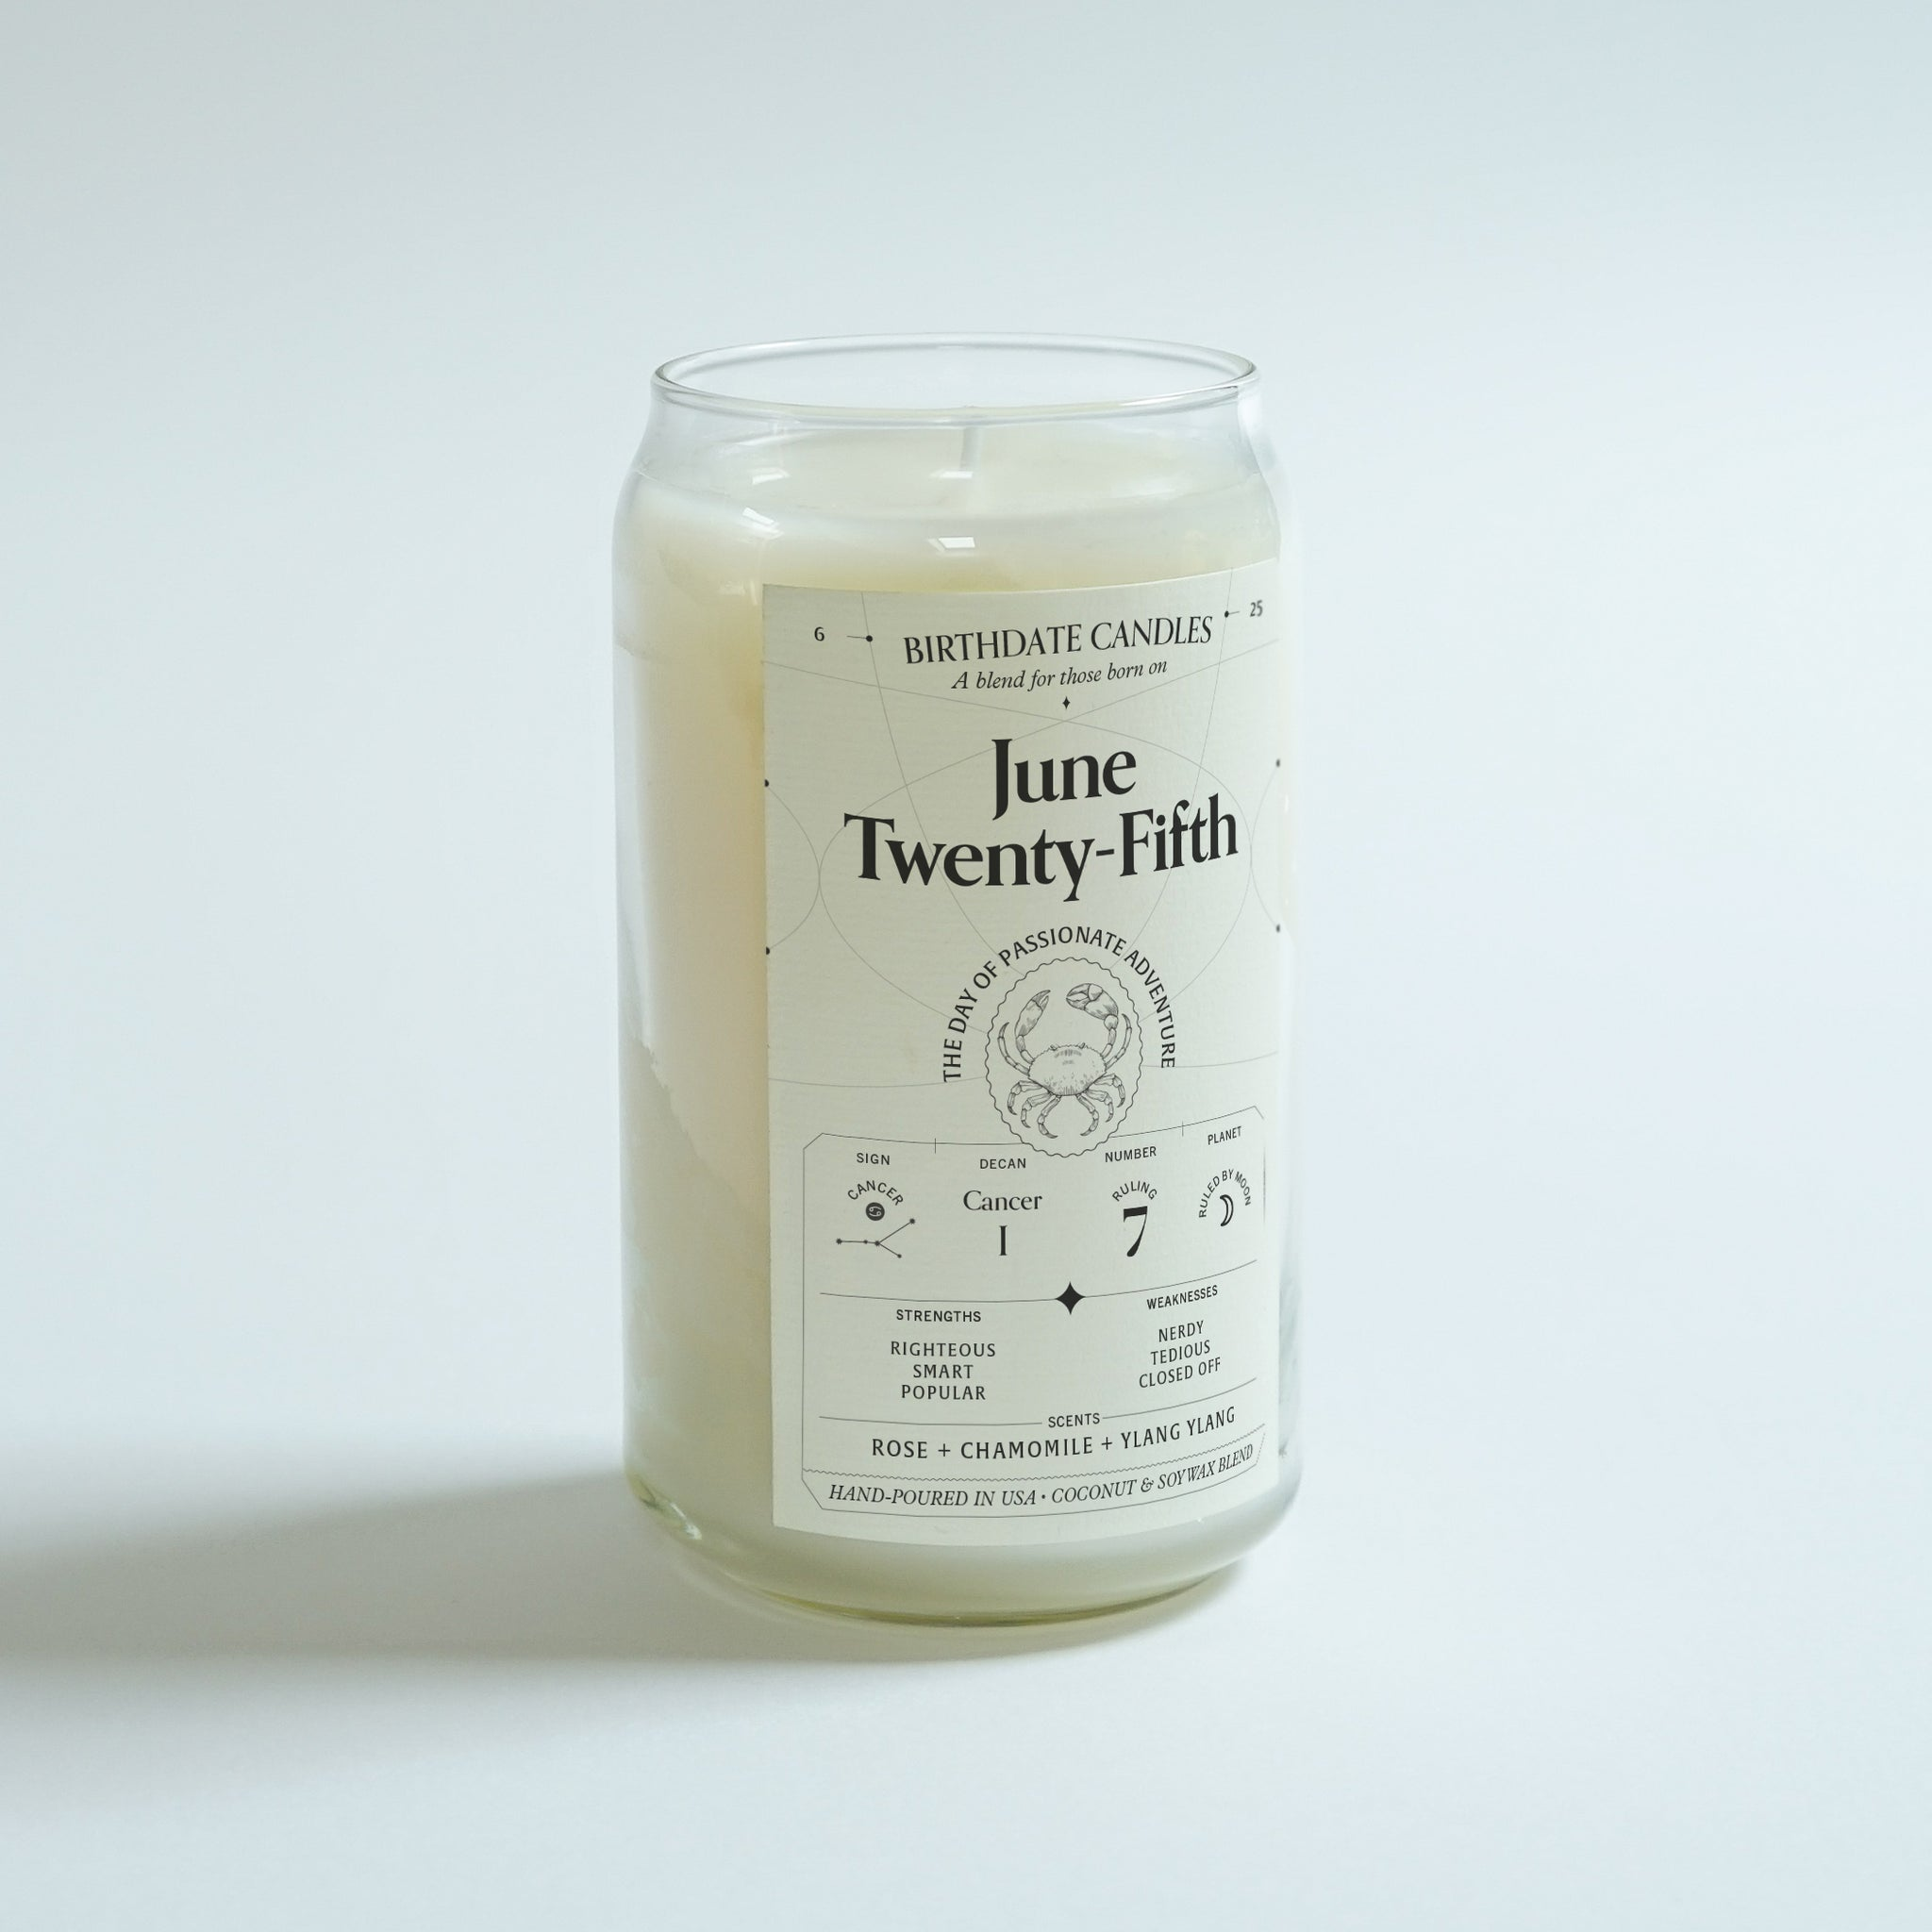 The June Twenty-Fifth Candle